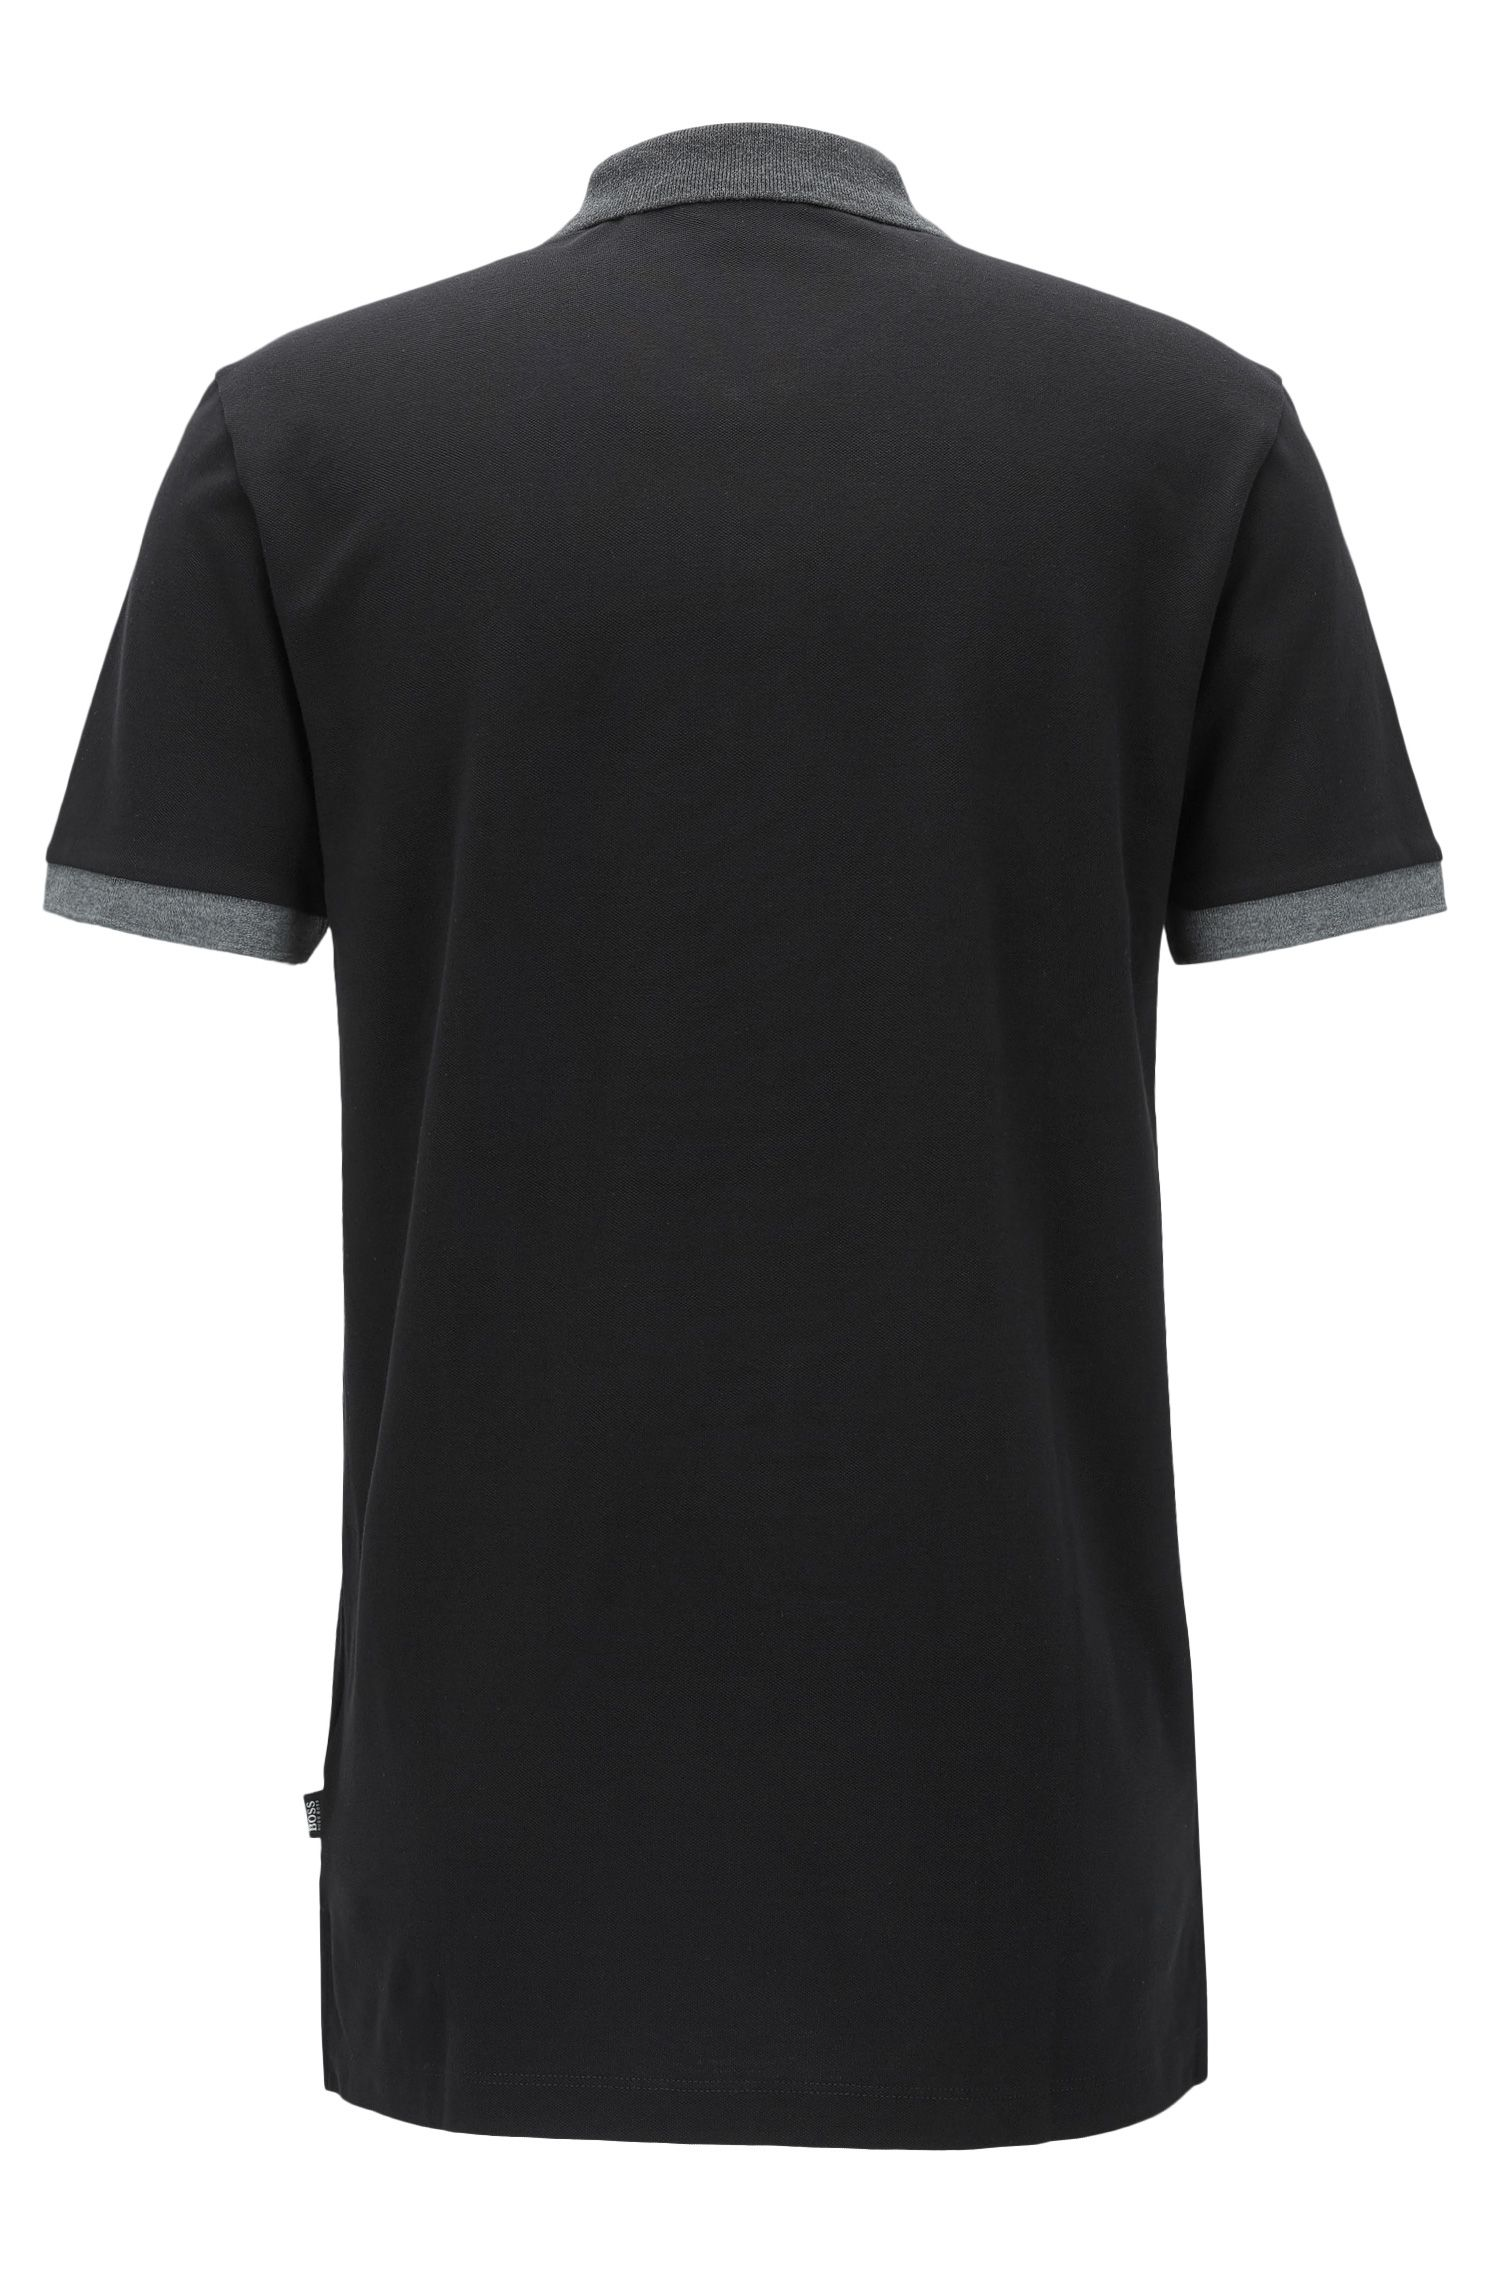 Regular-Fit Poloshirt aus Baumwolle im Colour Block Design, Schwarz